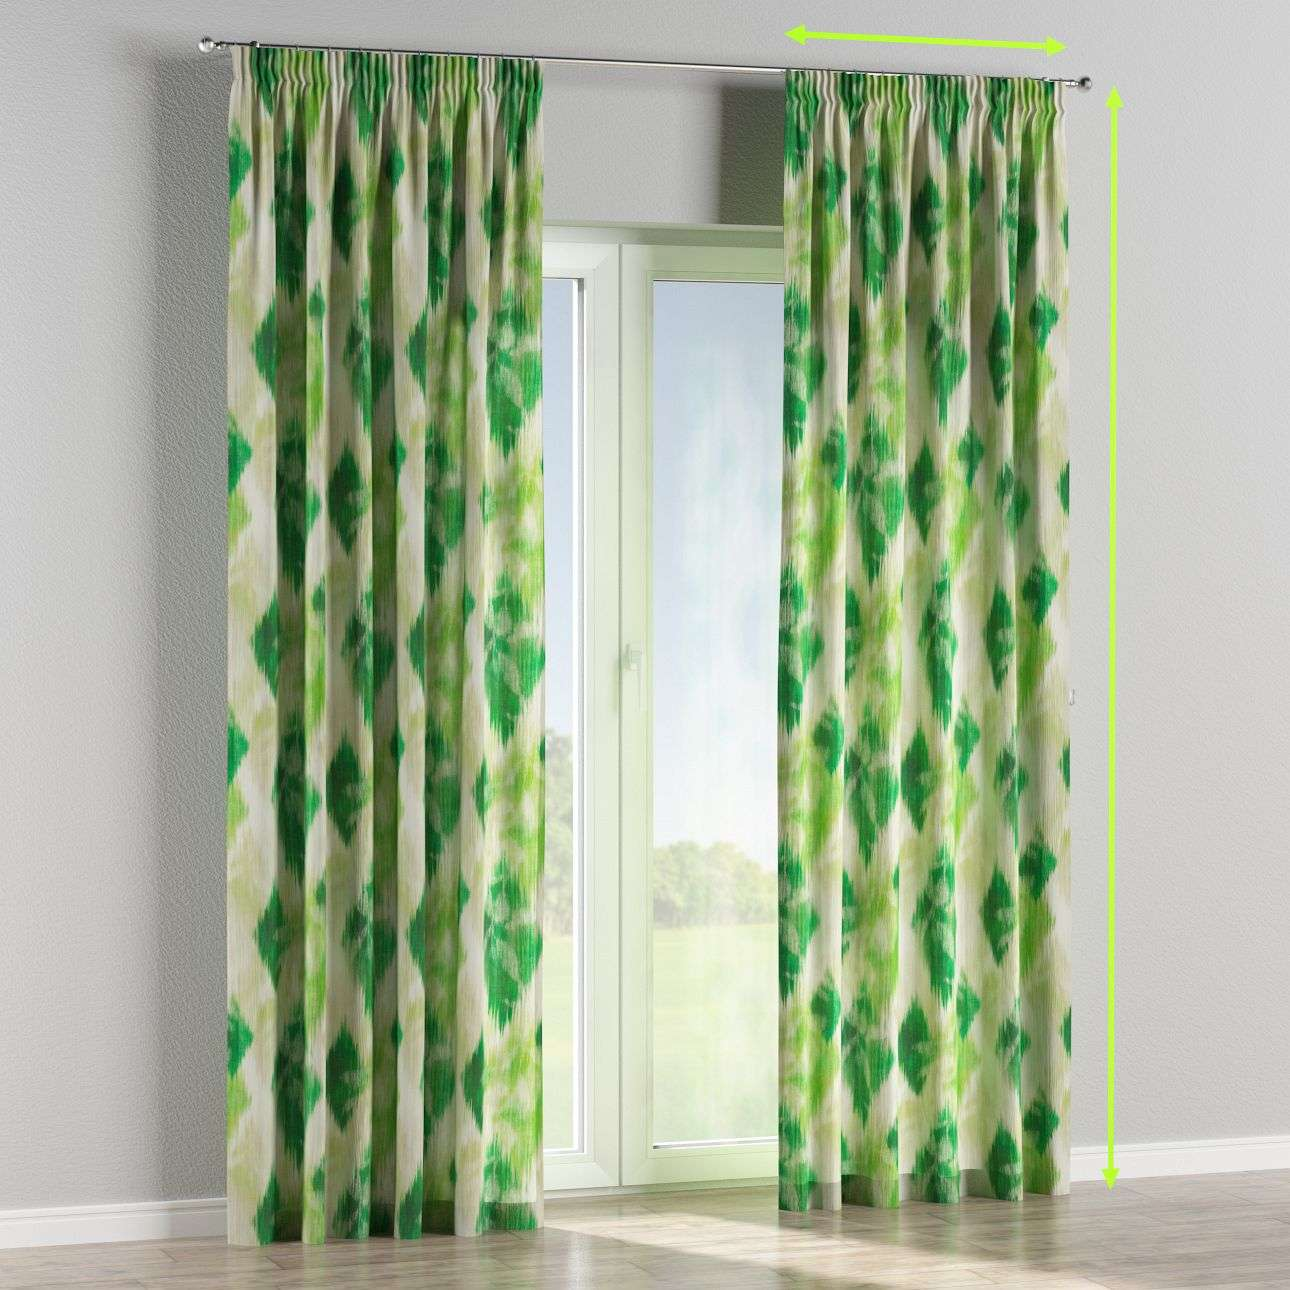 Pencil pleat lined curtains in collection Aquarelle, fabric: 140-70